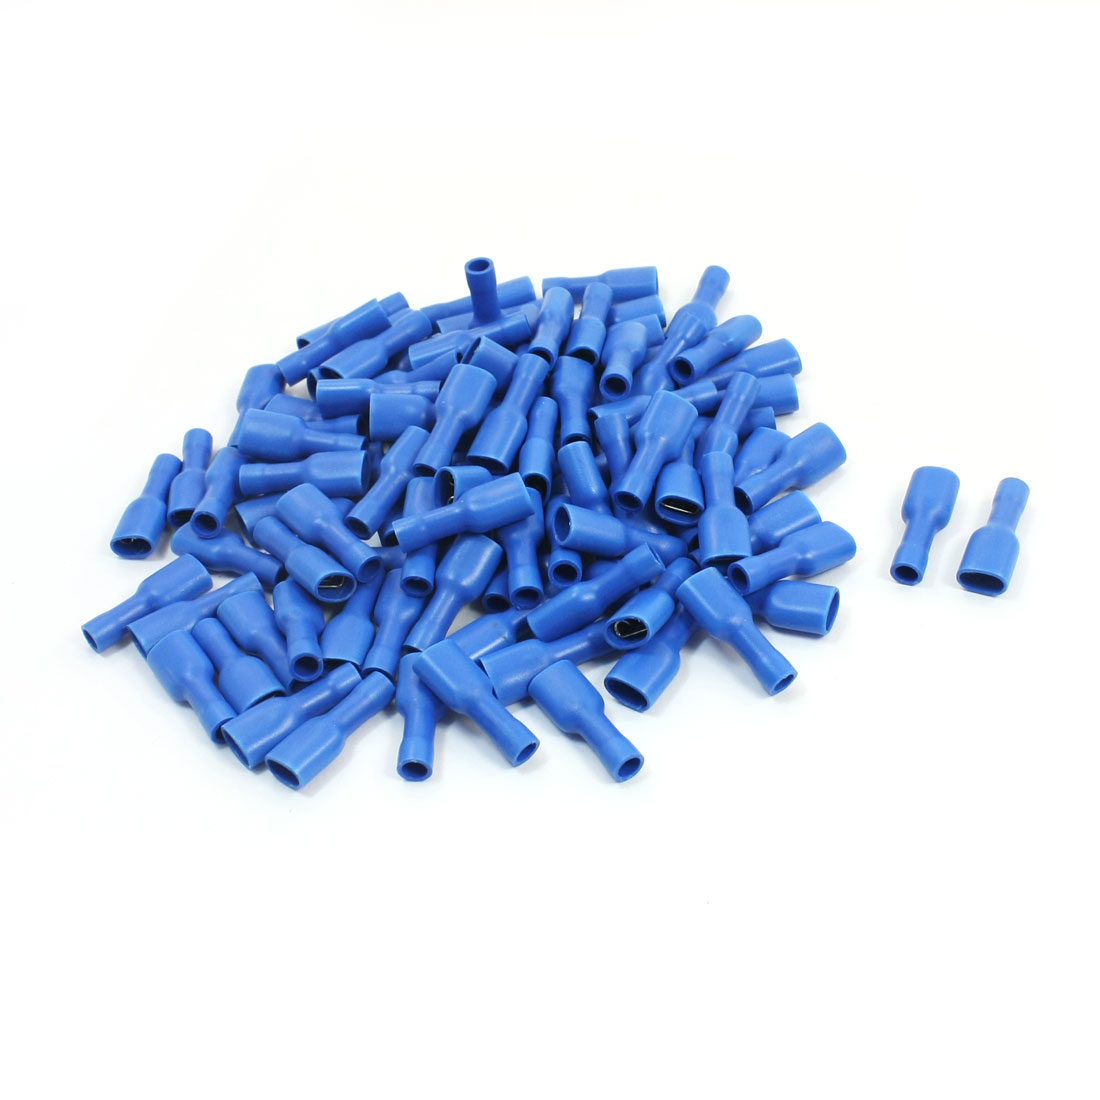 100 Pcs FDFD2-250 16-14AWG Wire Blue Plastic Coated Female Spade Connector Push-On Insulated Crimp Terminal